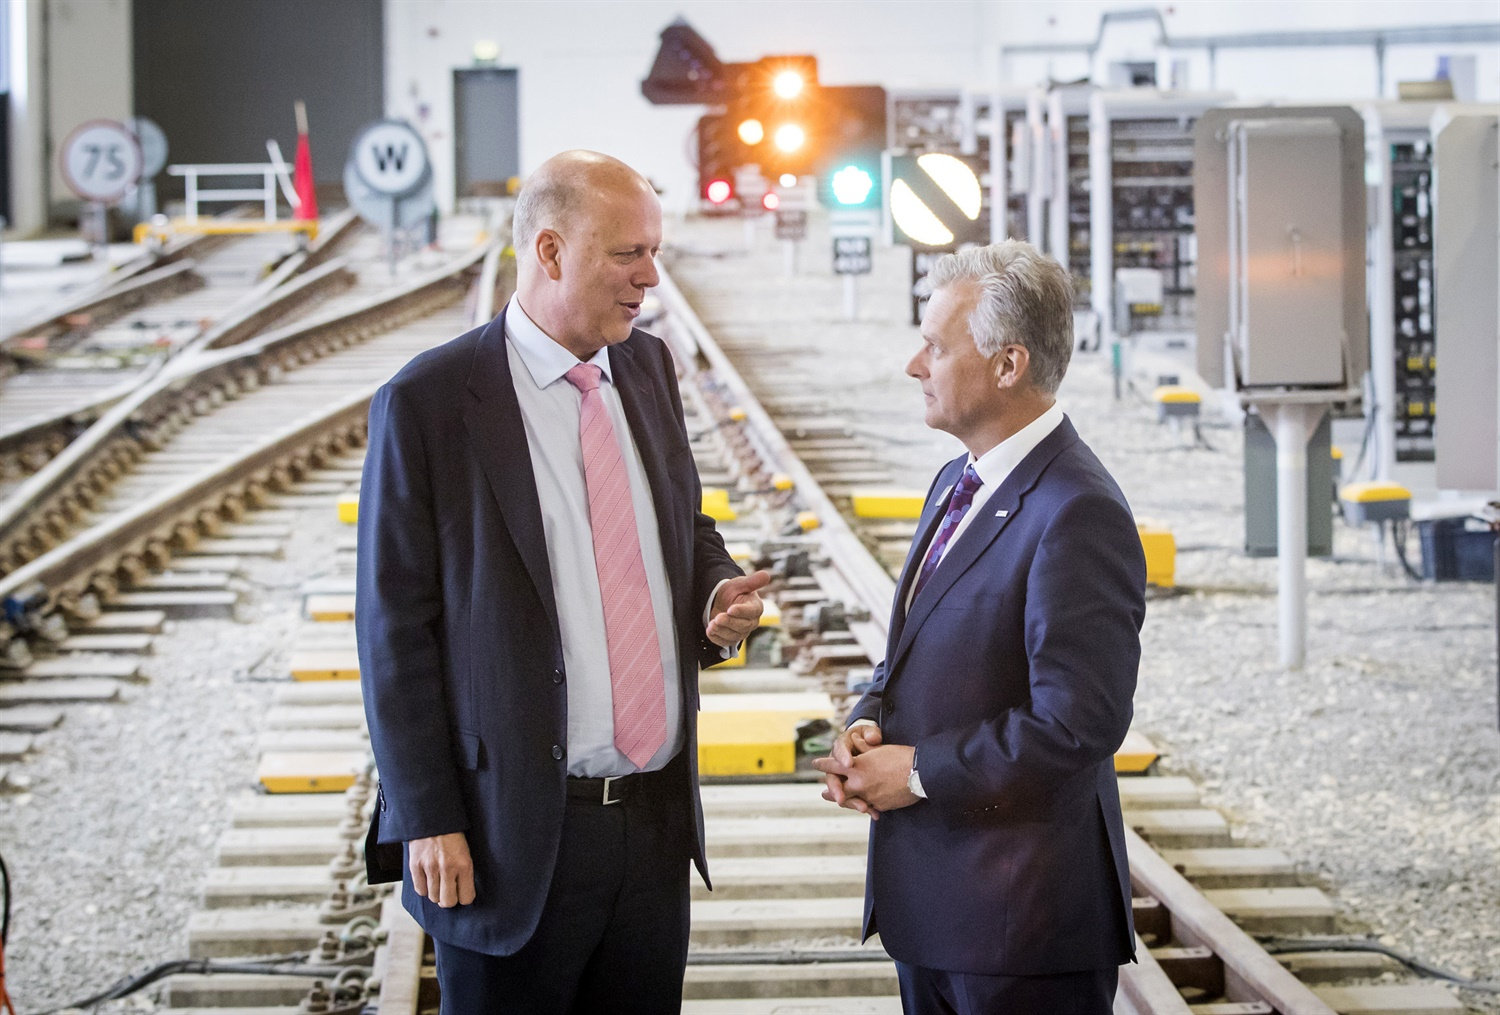 Digital Railway strategy sets out major upgrade targets for next 15 years